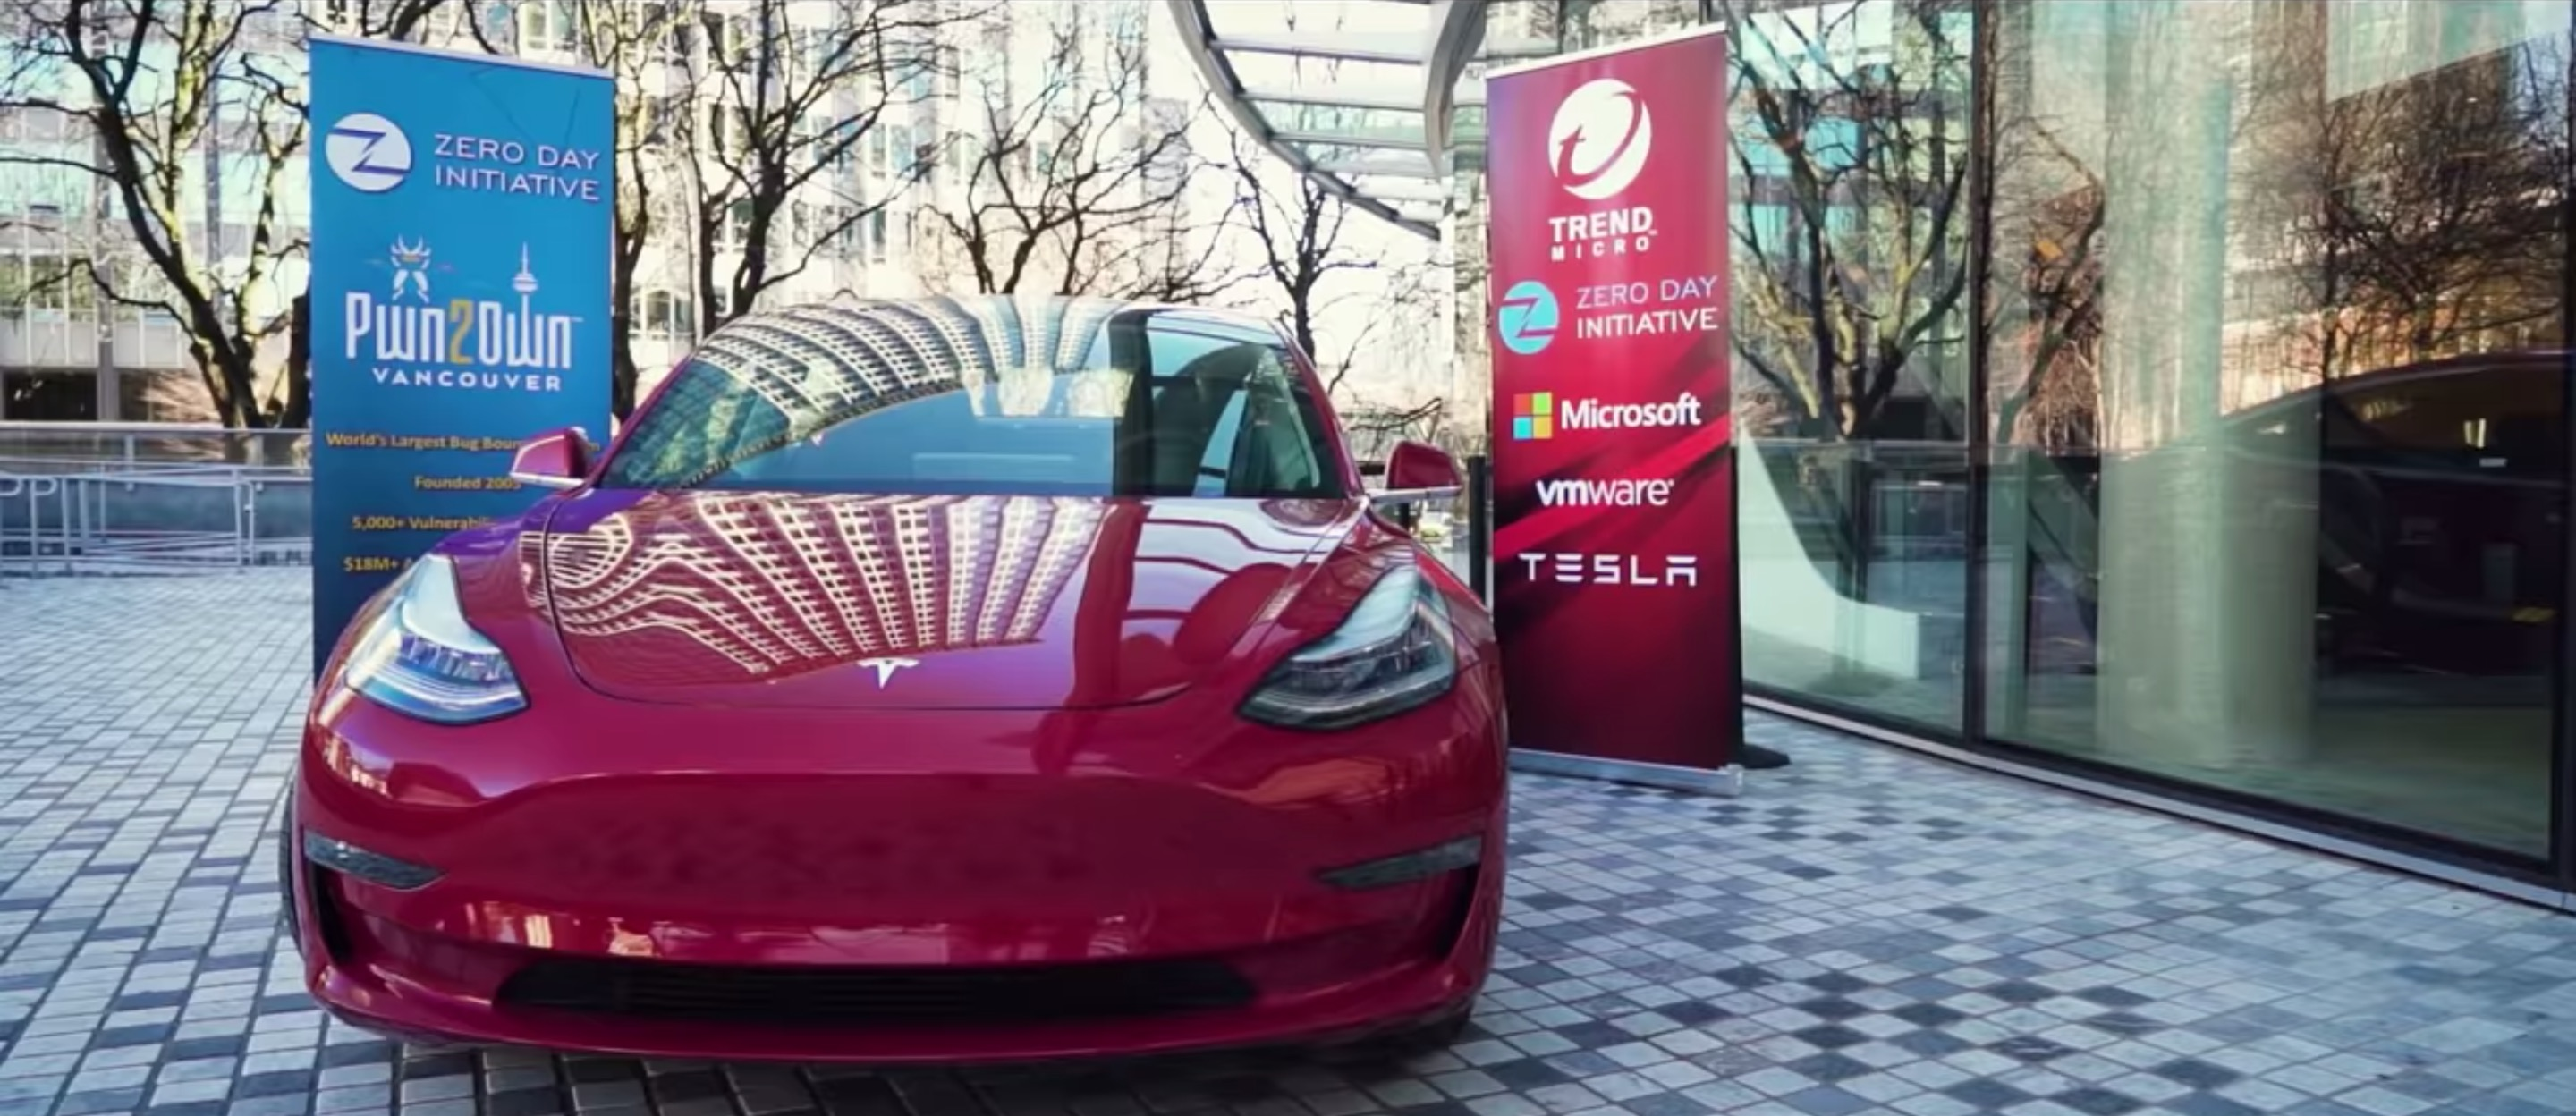 electrek.co - Fred Lambert - Hackers crack Tesla Model 3 in competition, Tesla gives them the car